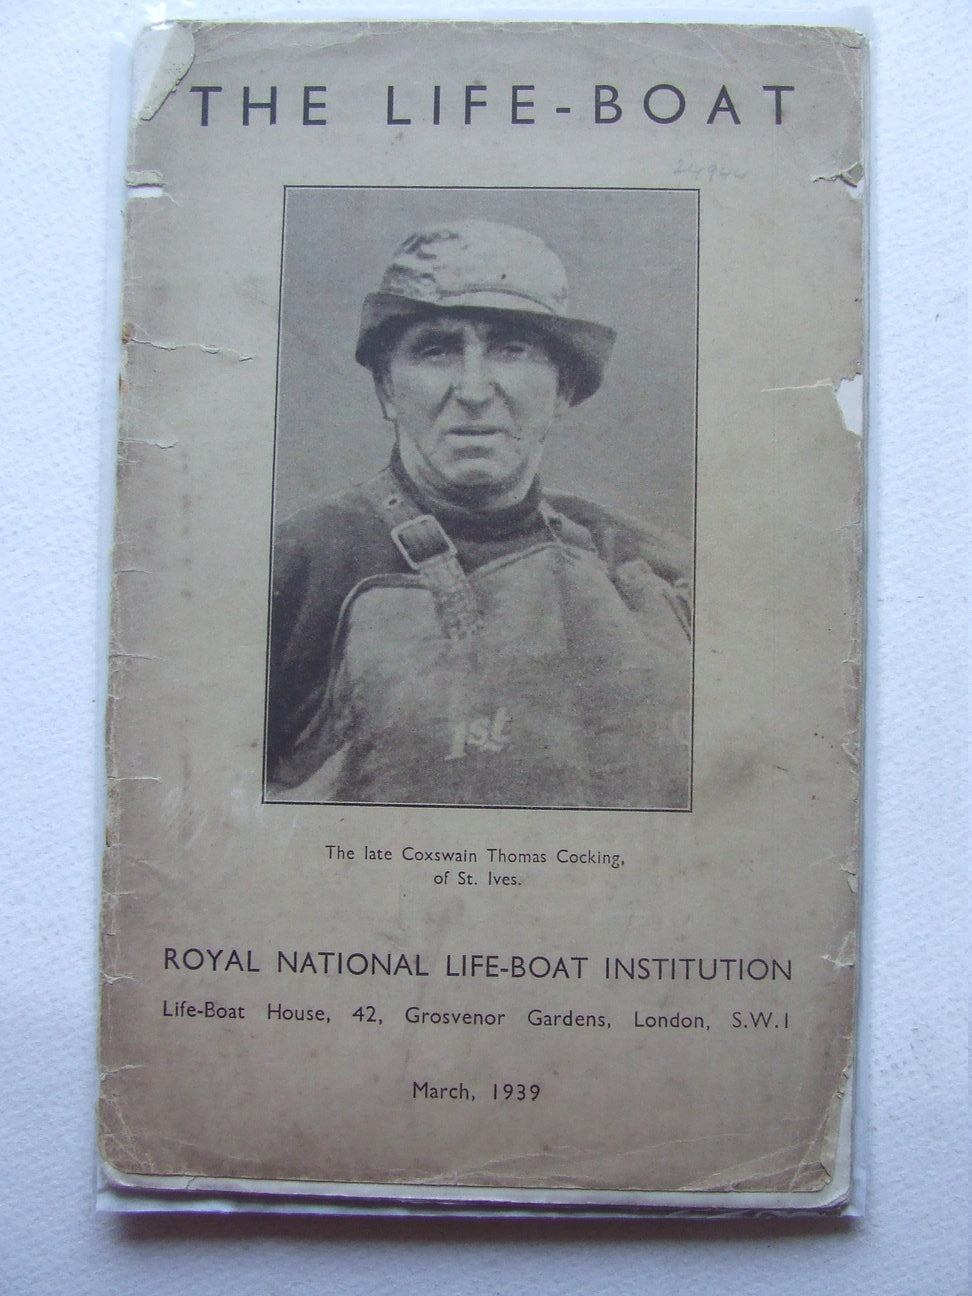 The Life-Boat, the journal of the Royal National Life-boat Institution